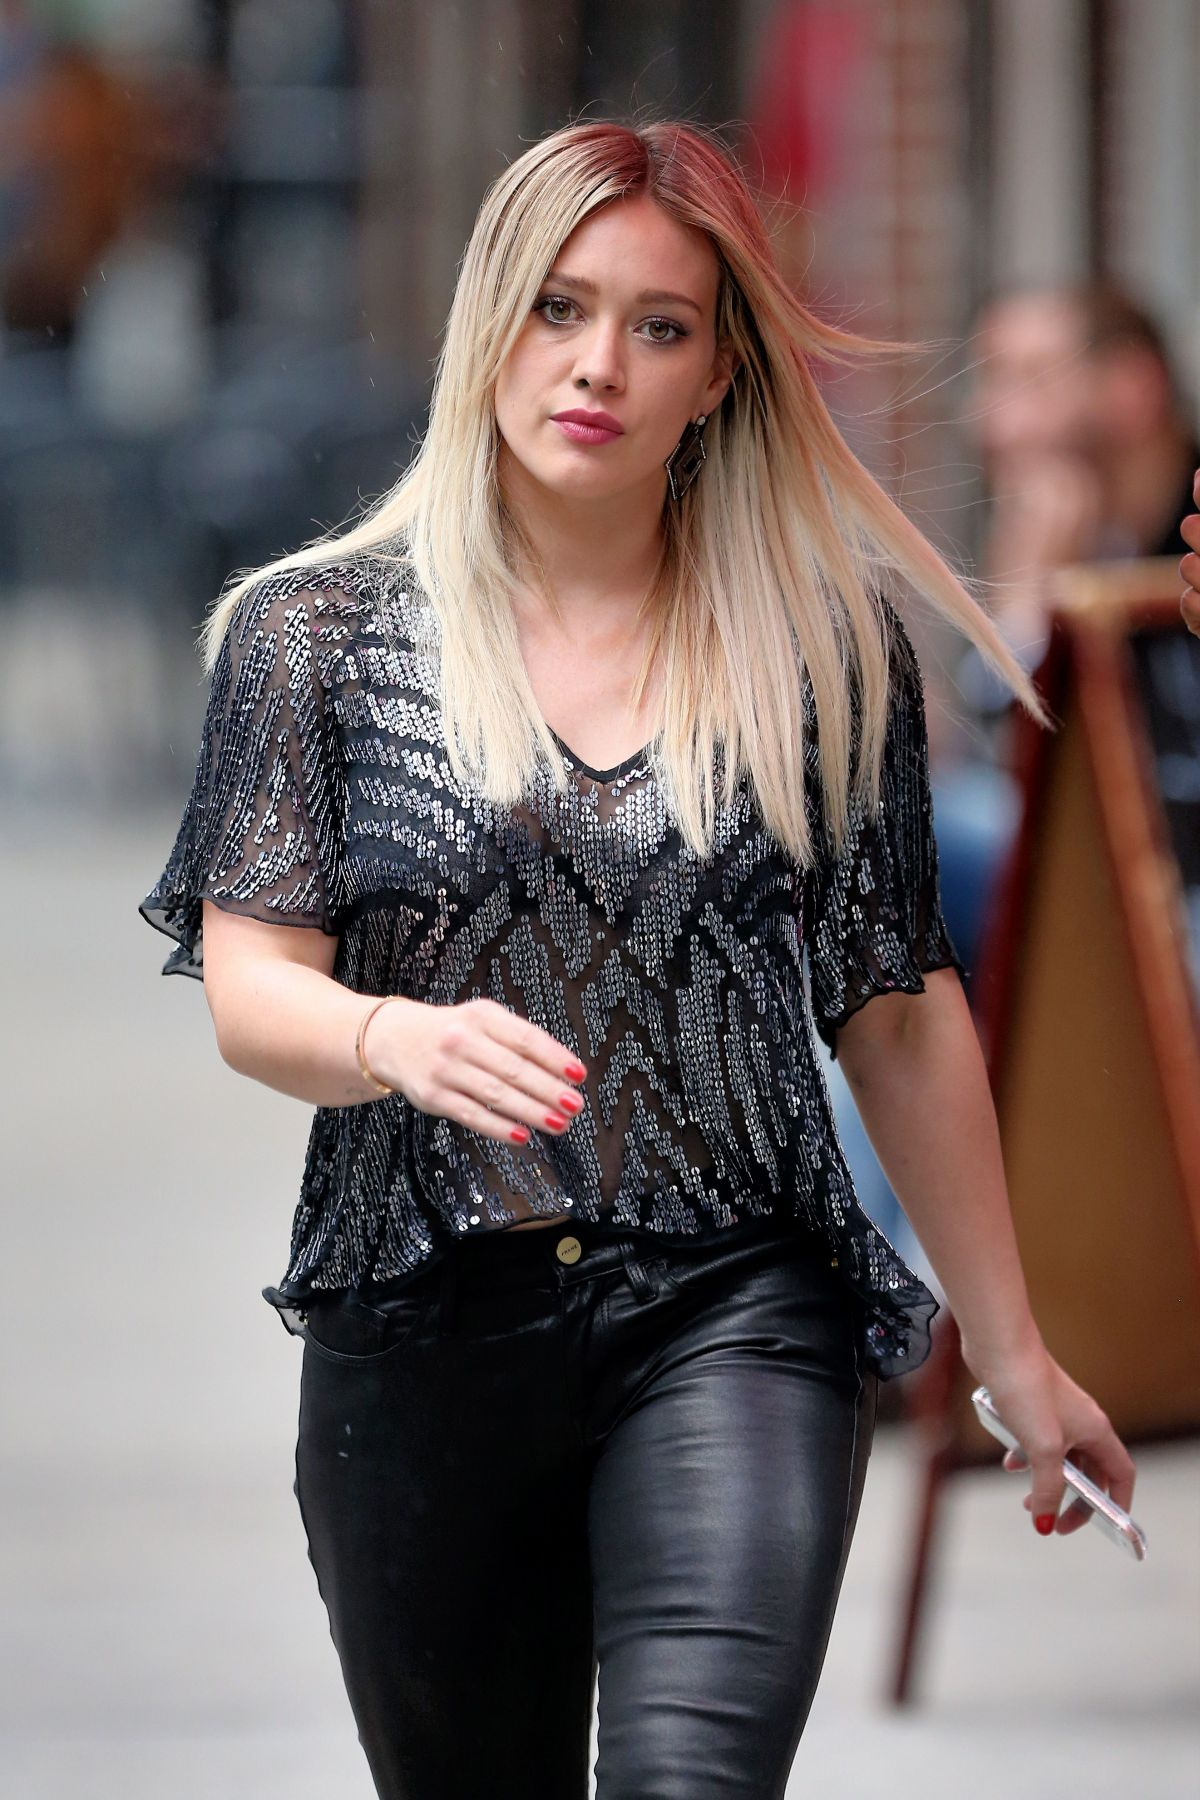 hilary duff - photo #10